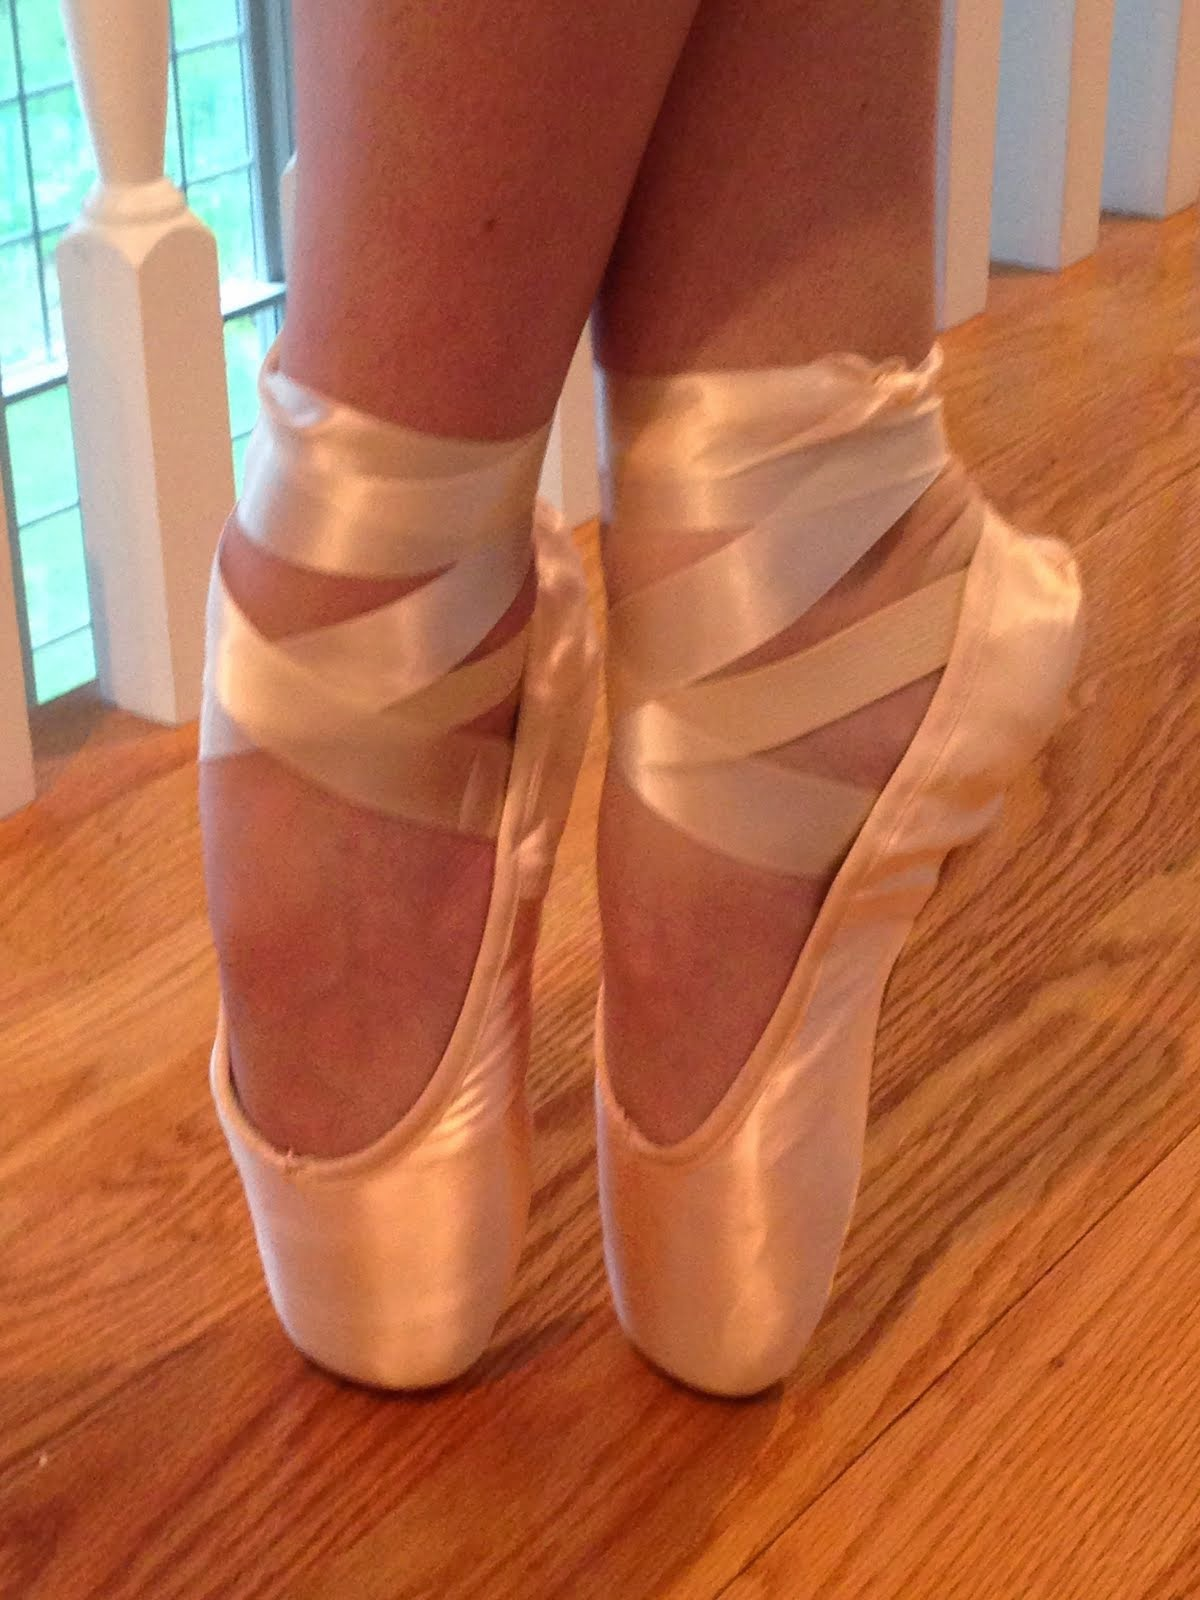 EN POINTE WITH SCOLIOSIS